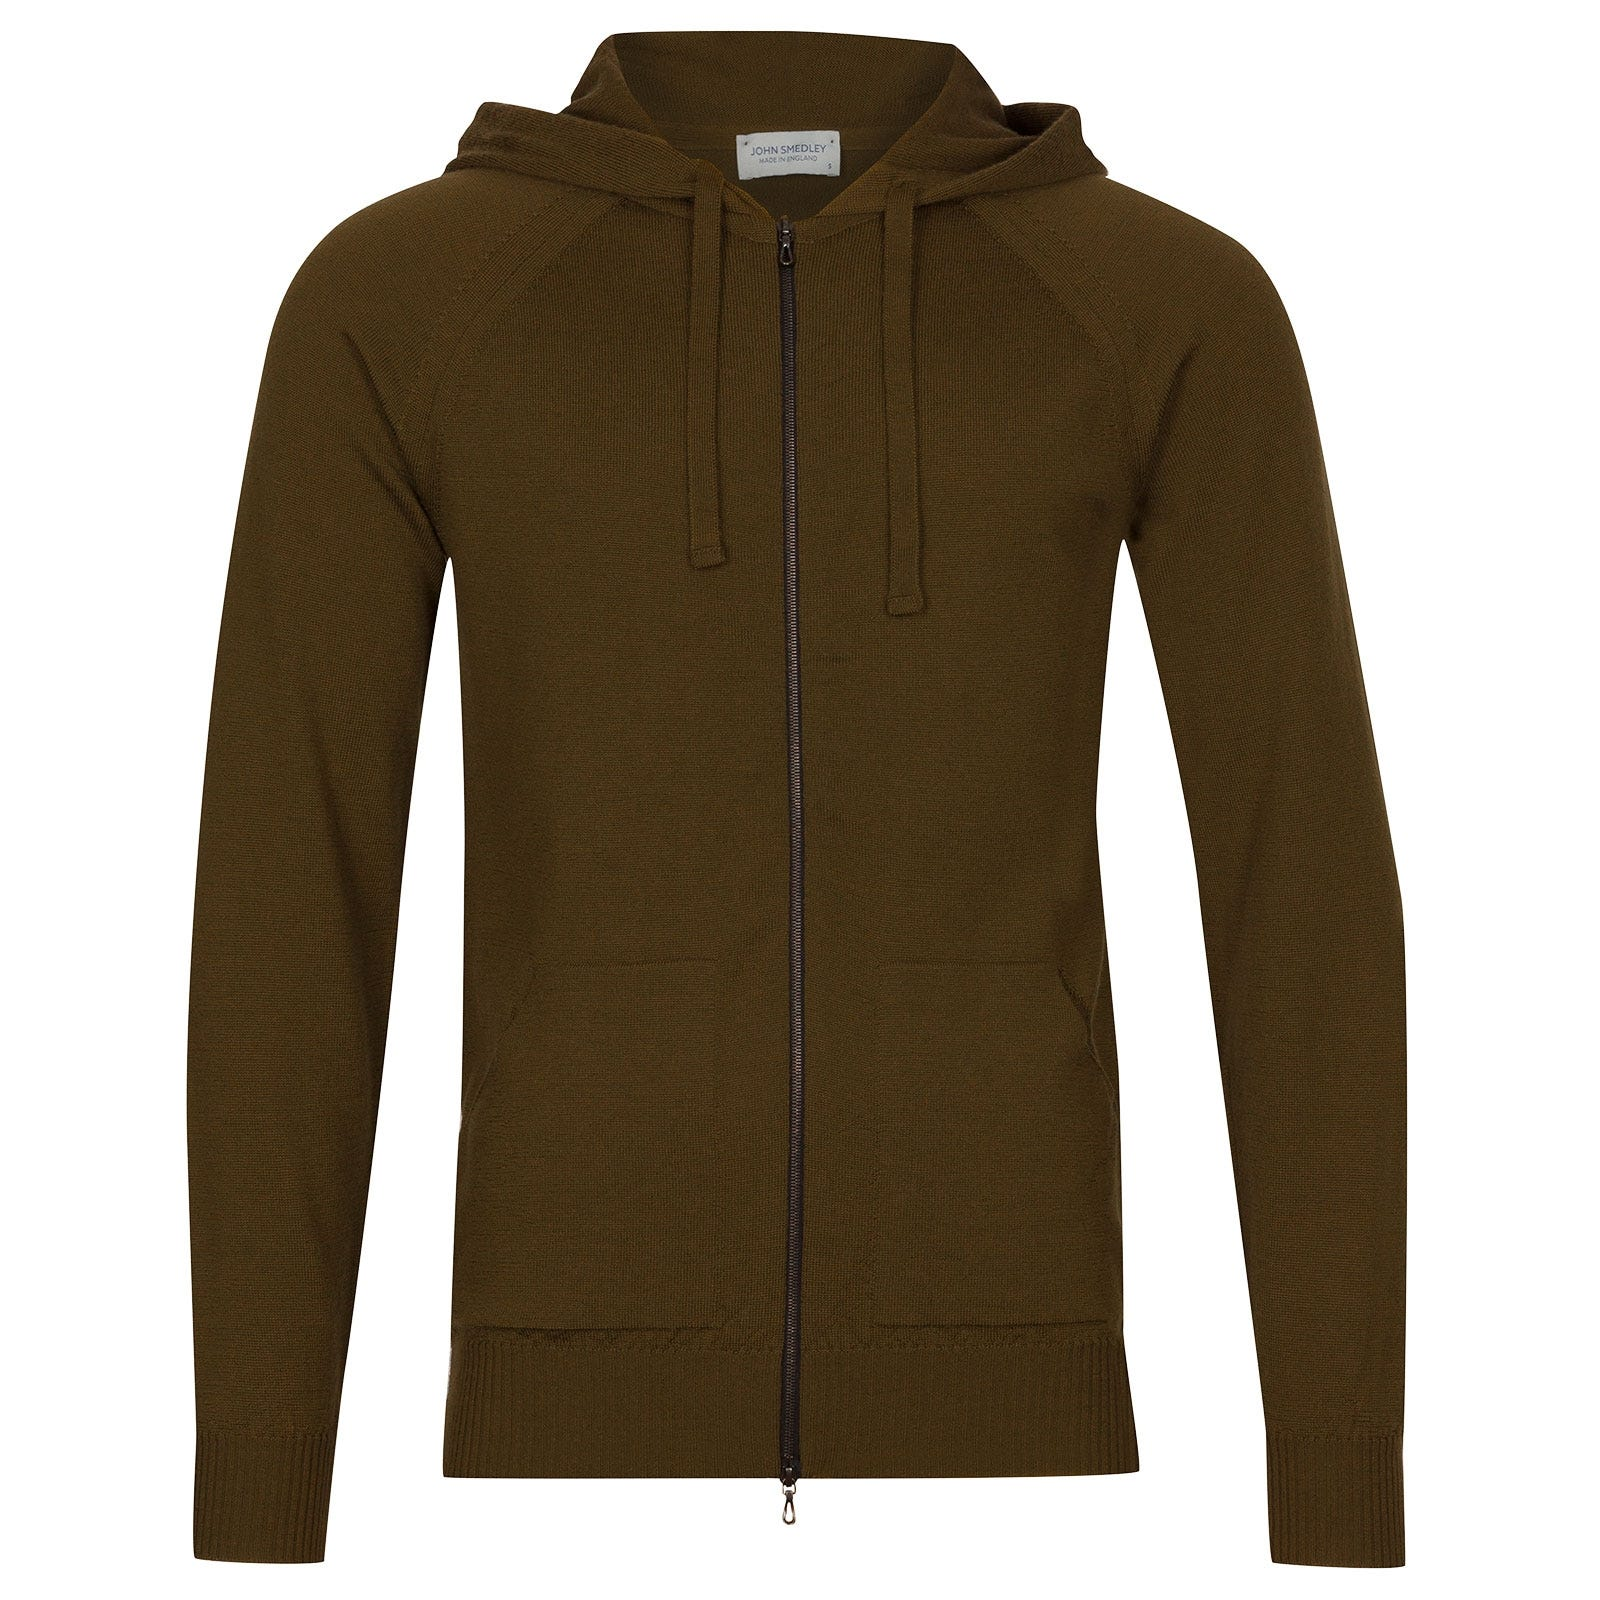 John Smedley Reservoir Merino Wool Jacket in Khaki-XL